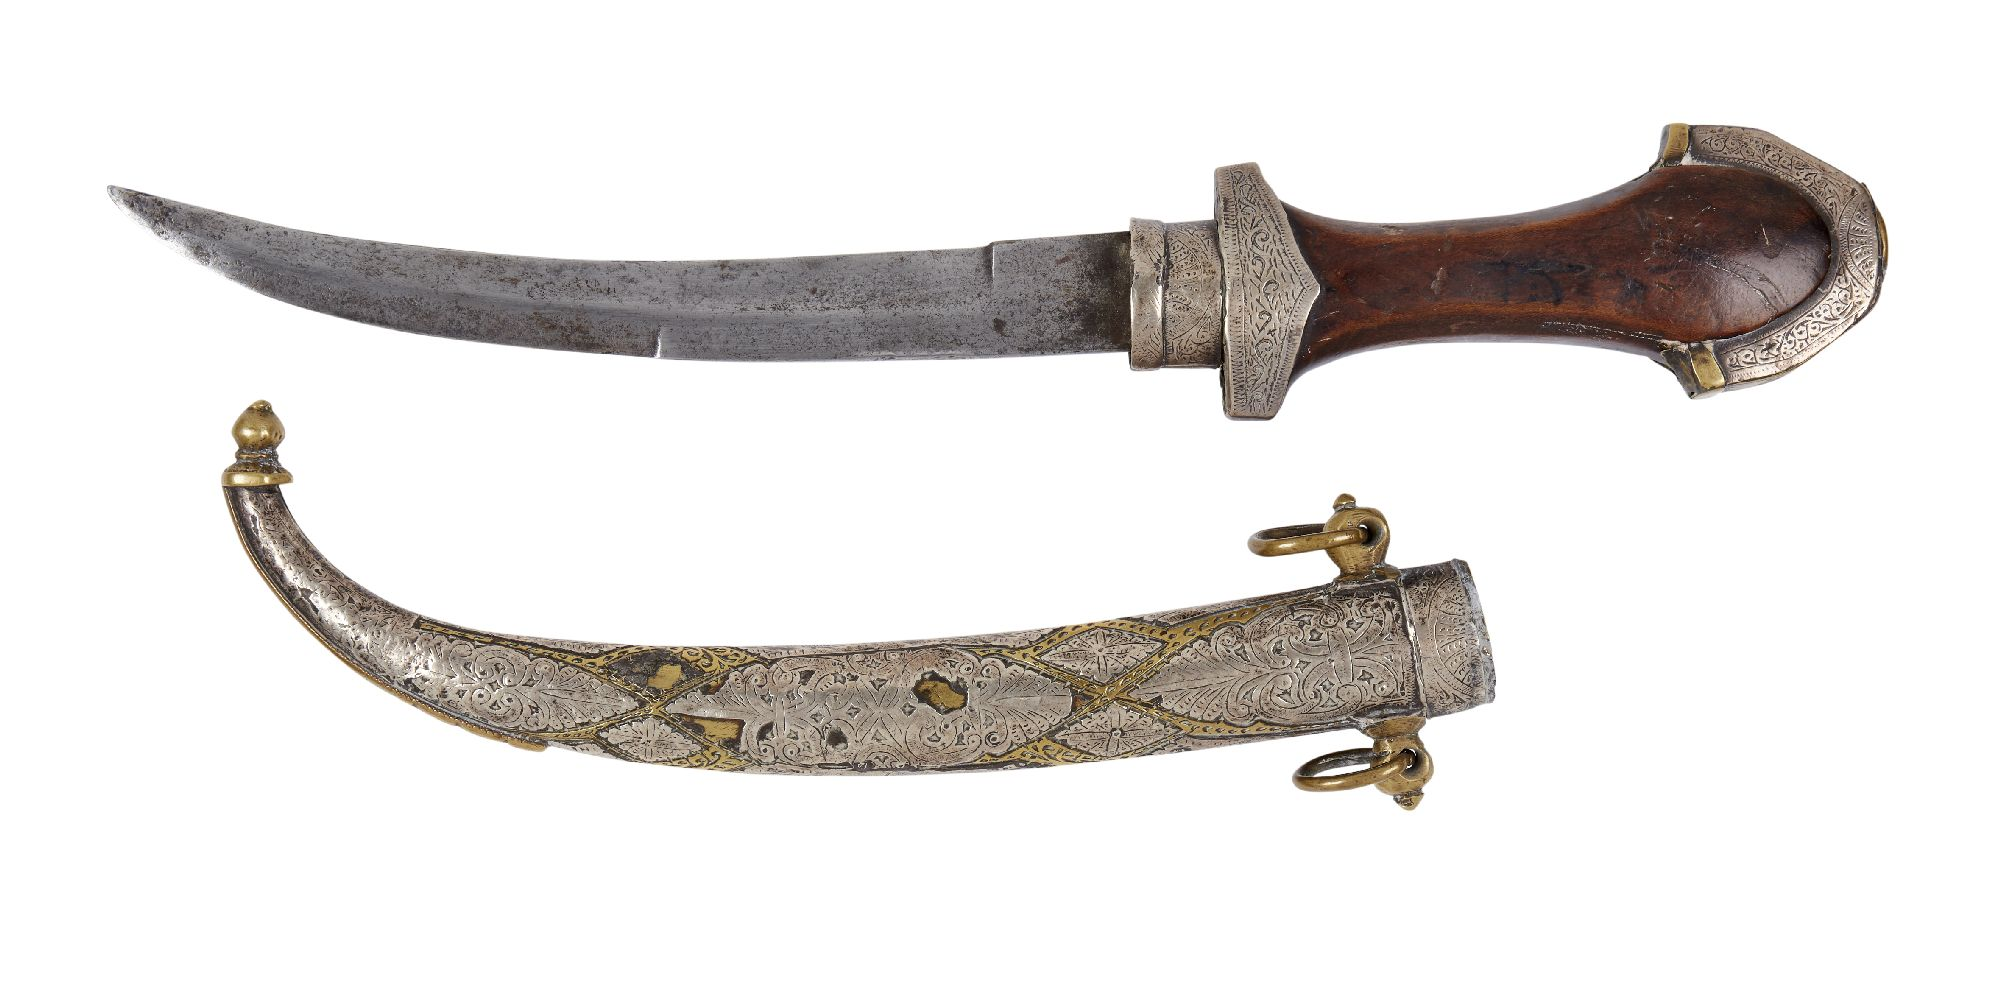 A kinjal, Yemen, early 20th century, the brass scabbard with engraved white metal mounts, 42cm